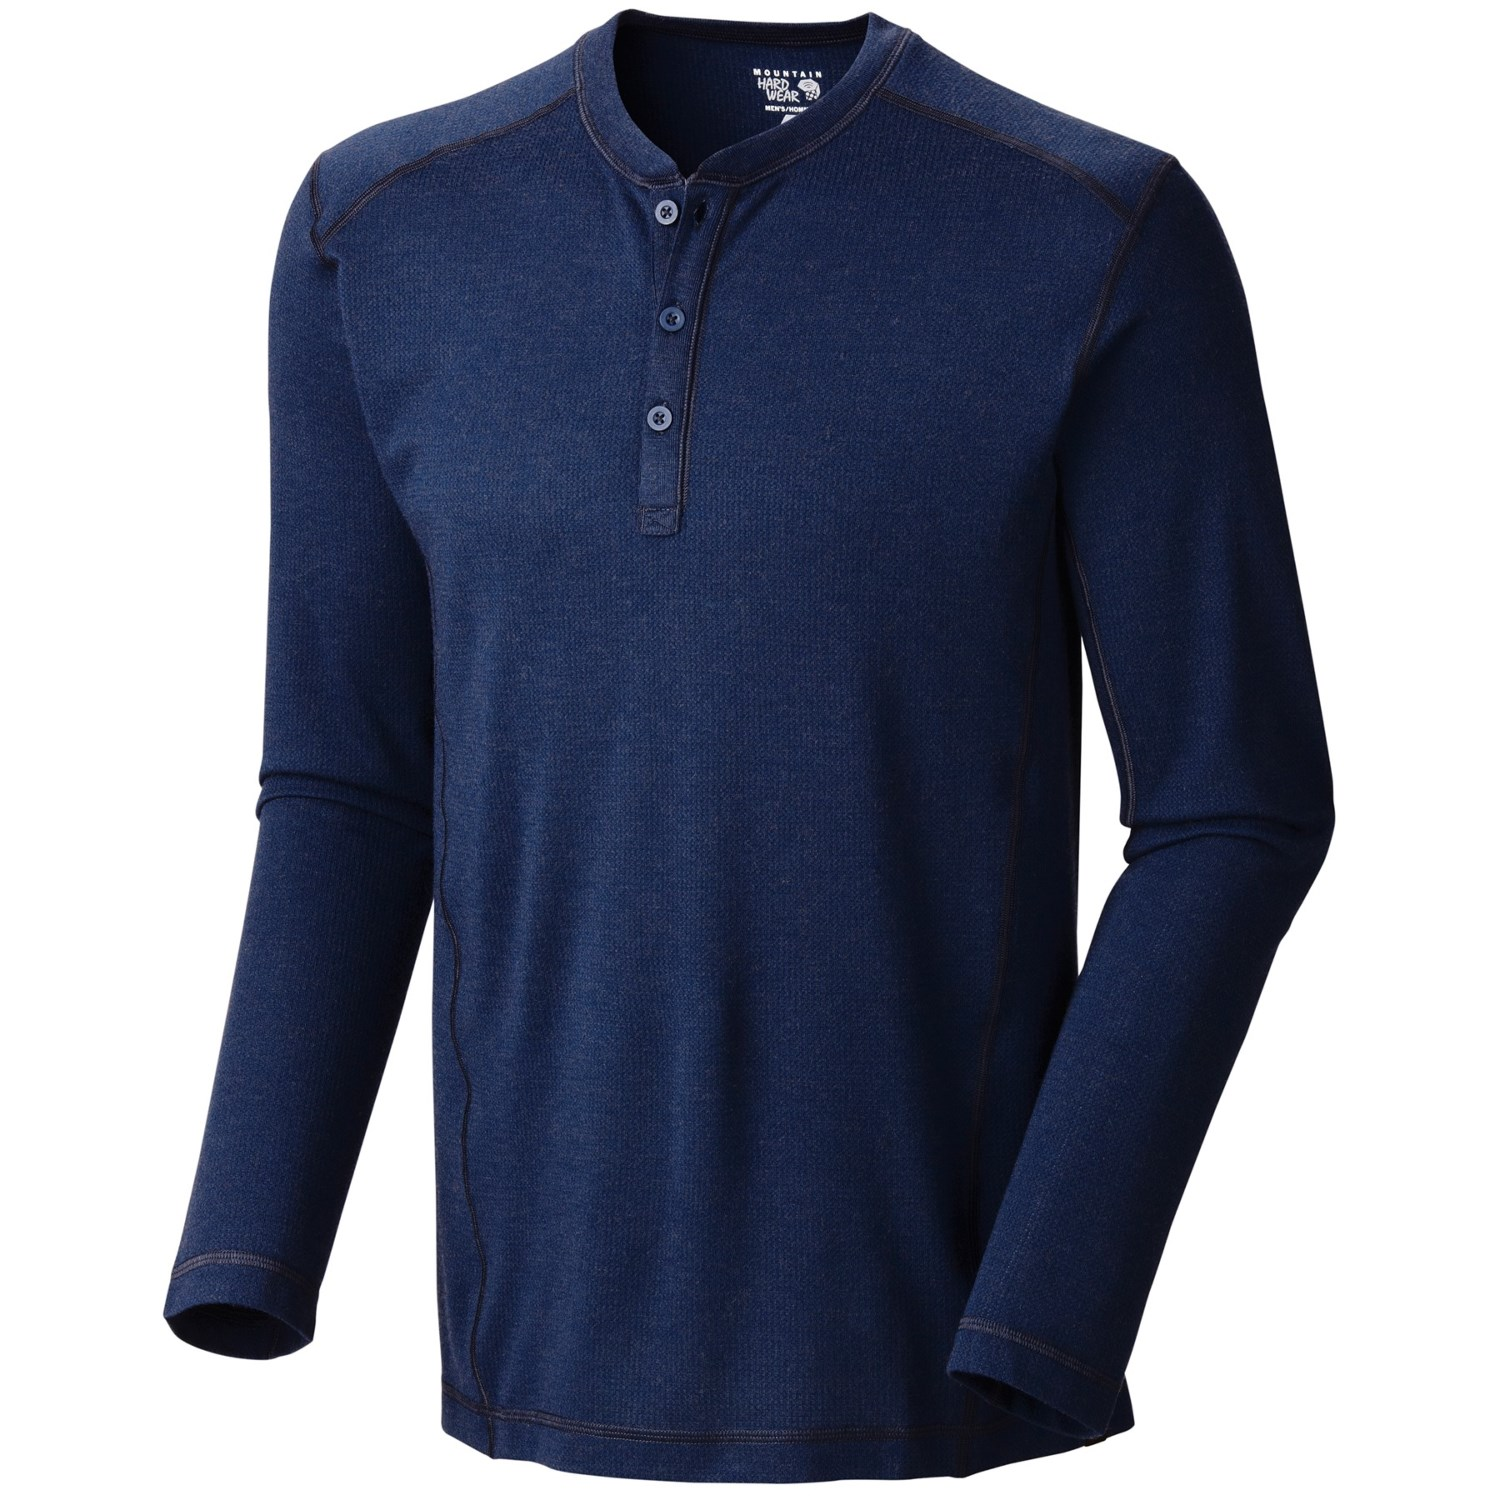 Men's thermal shirts made with a cotton/poly blend are lightweight but warm and easy to care for. Choose a pull-on style in a solid color and wear it under a plaid flannel shirt or go with a classic stripped pattern and layer it under a solid color button shirt.